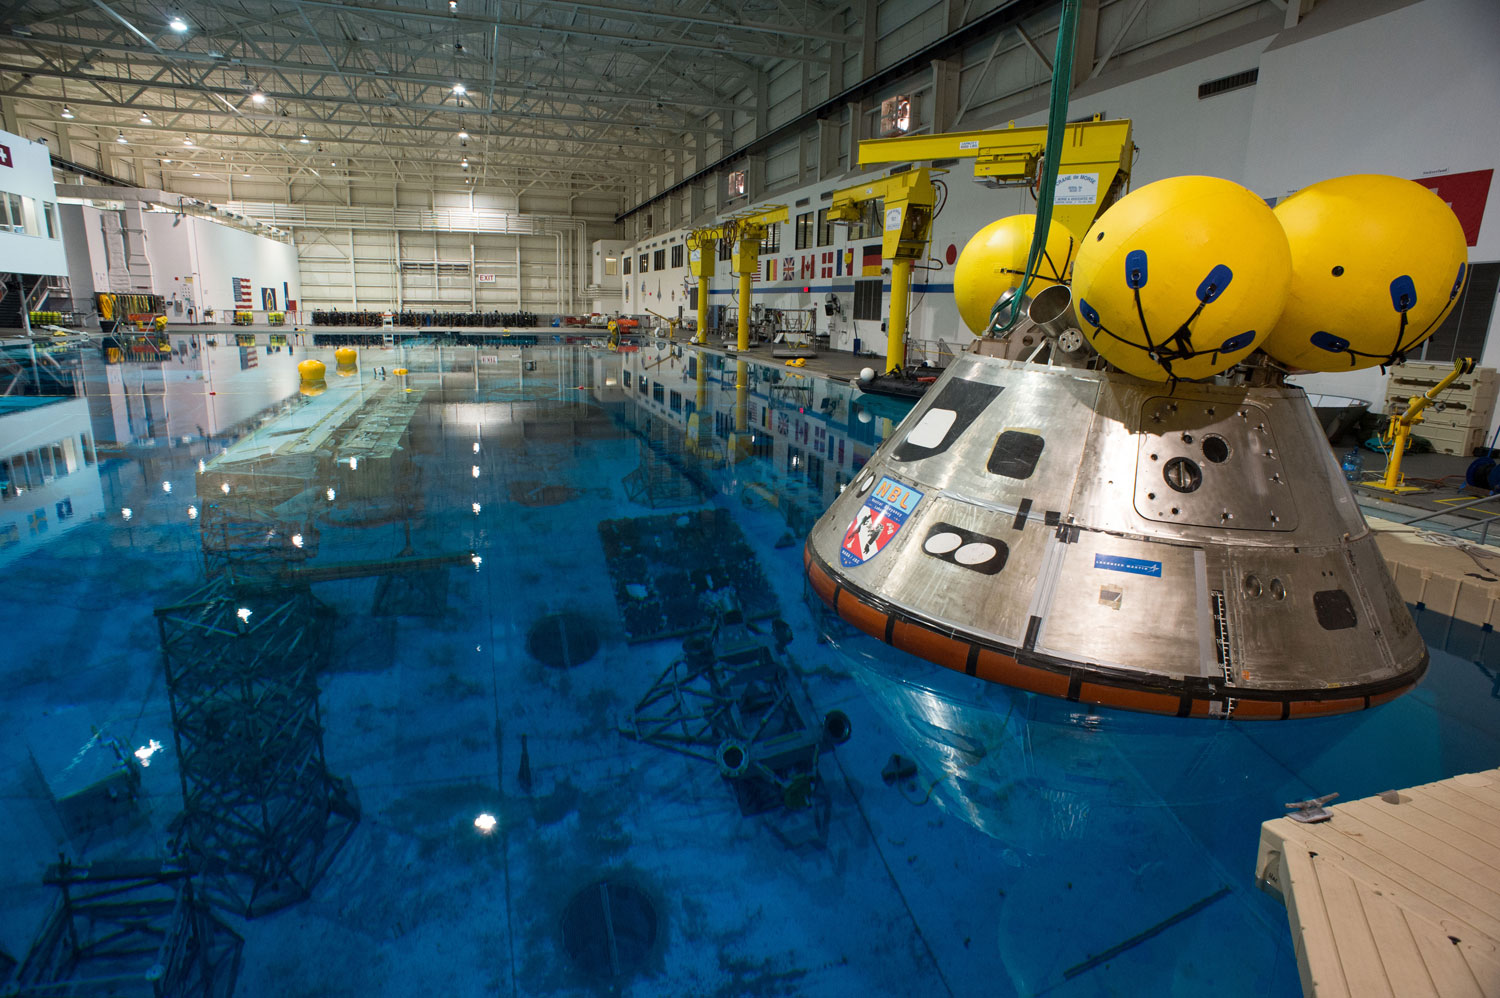 A model of Orion floats above an underwater mockup of the International Space Station in the Neutral Buoyancy Laboratory in Houston on April 25, 2013.